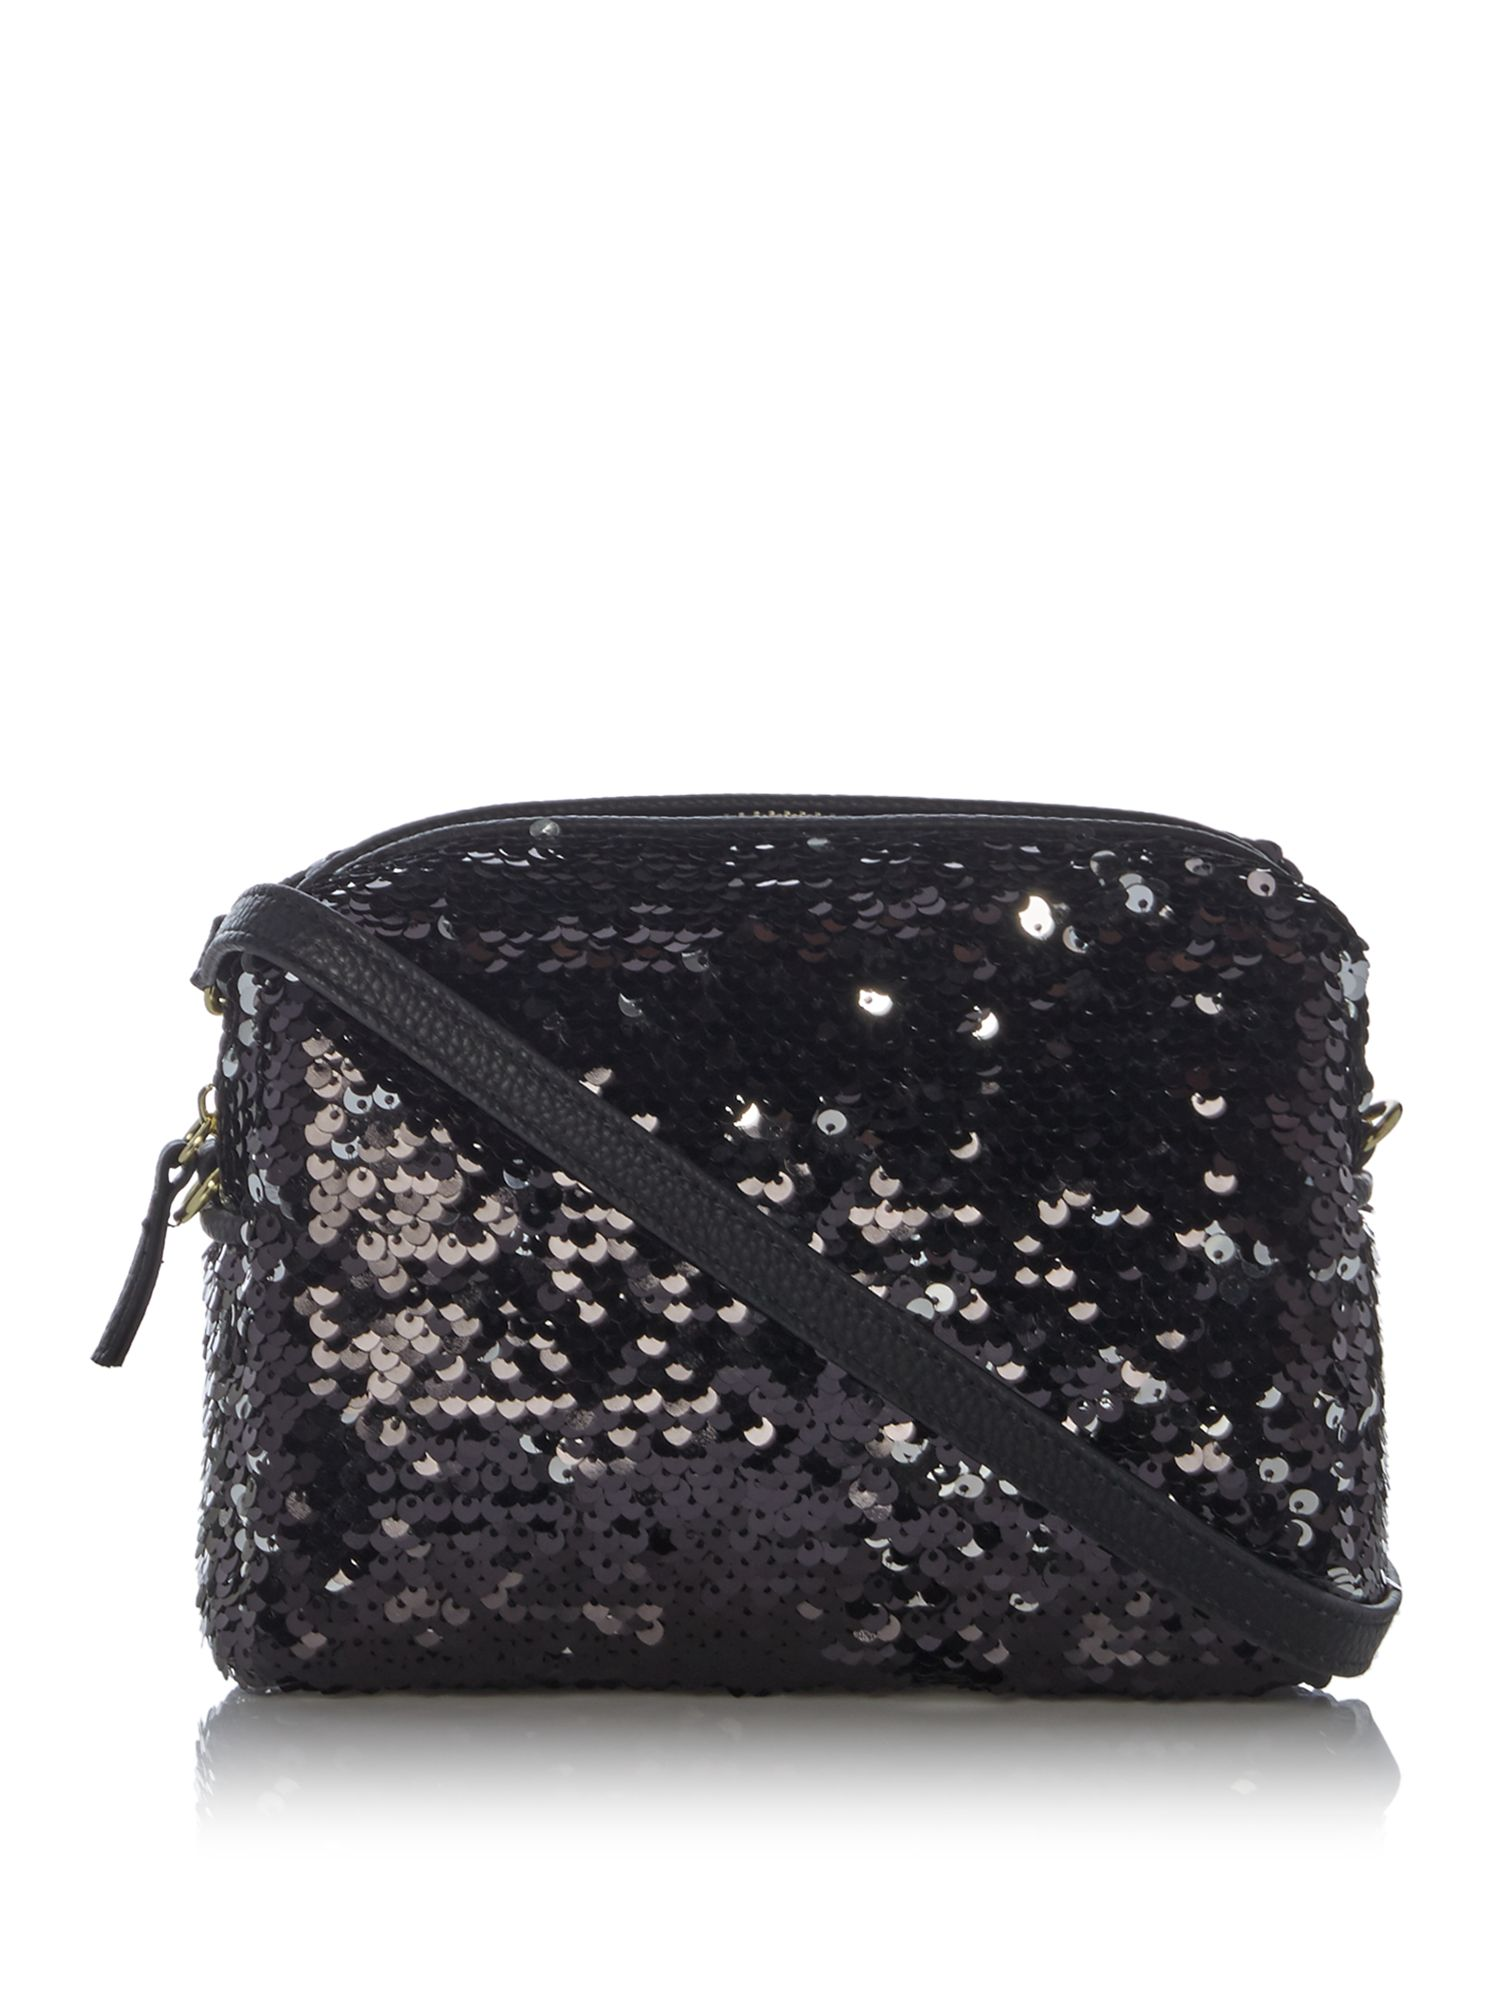 Therapy sequin cross-body bag